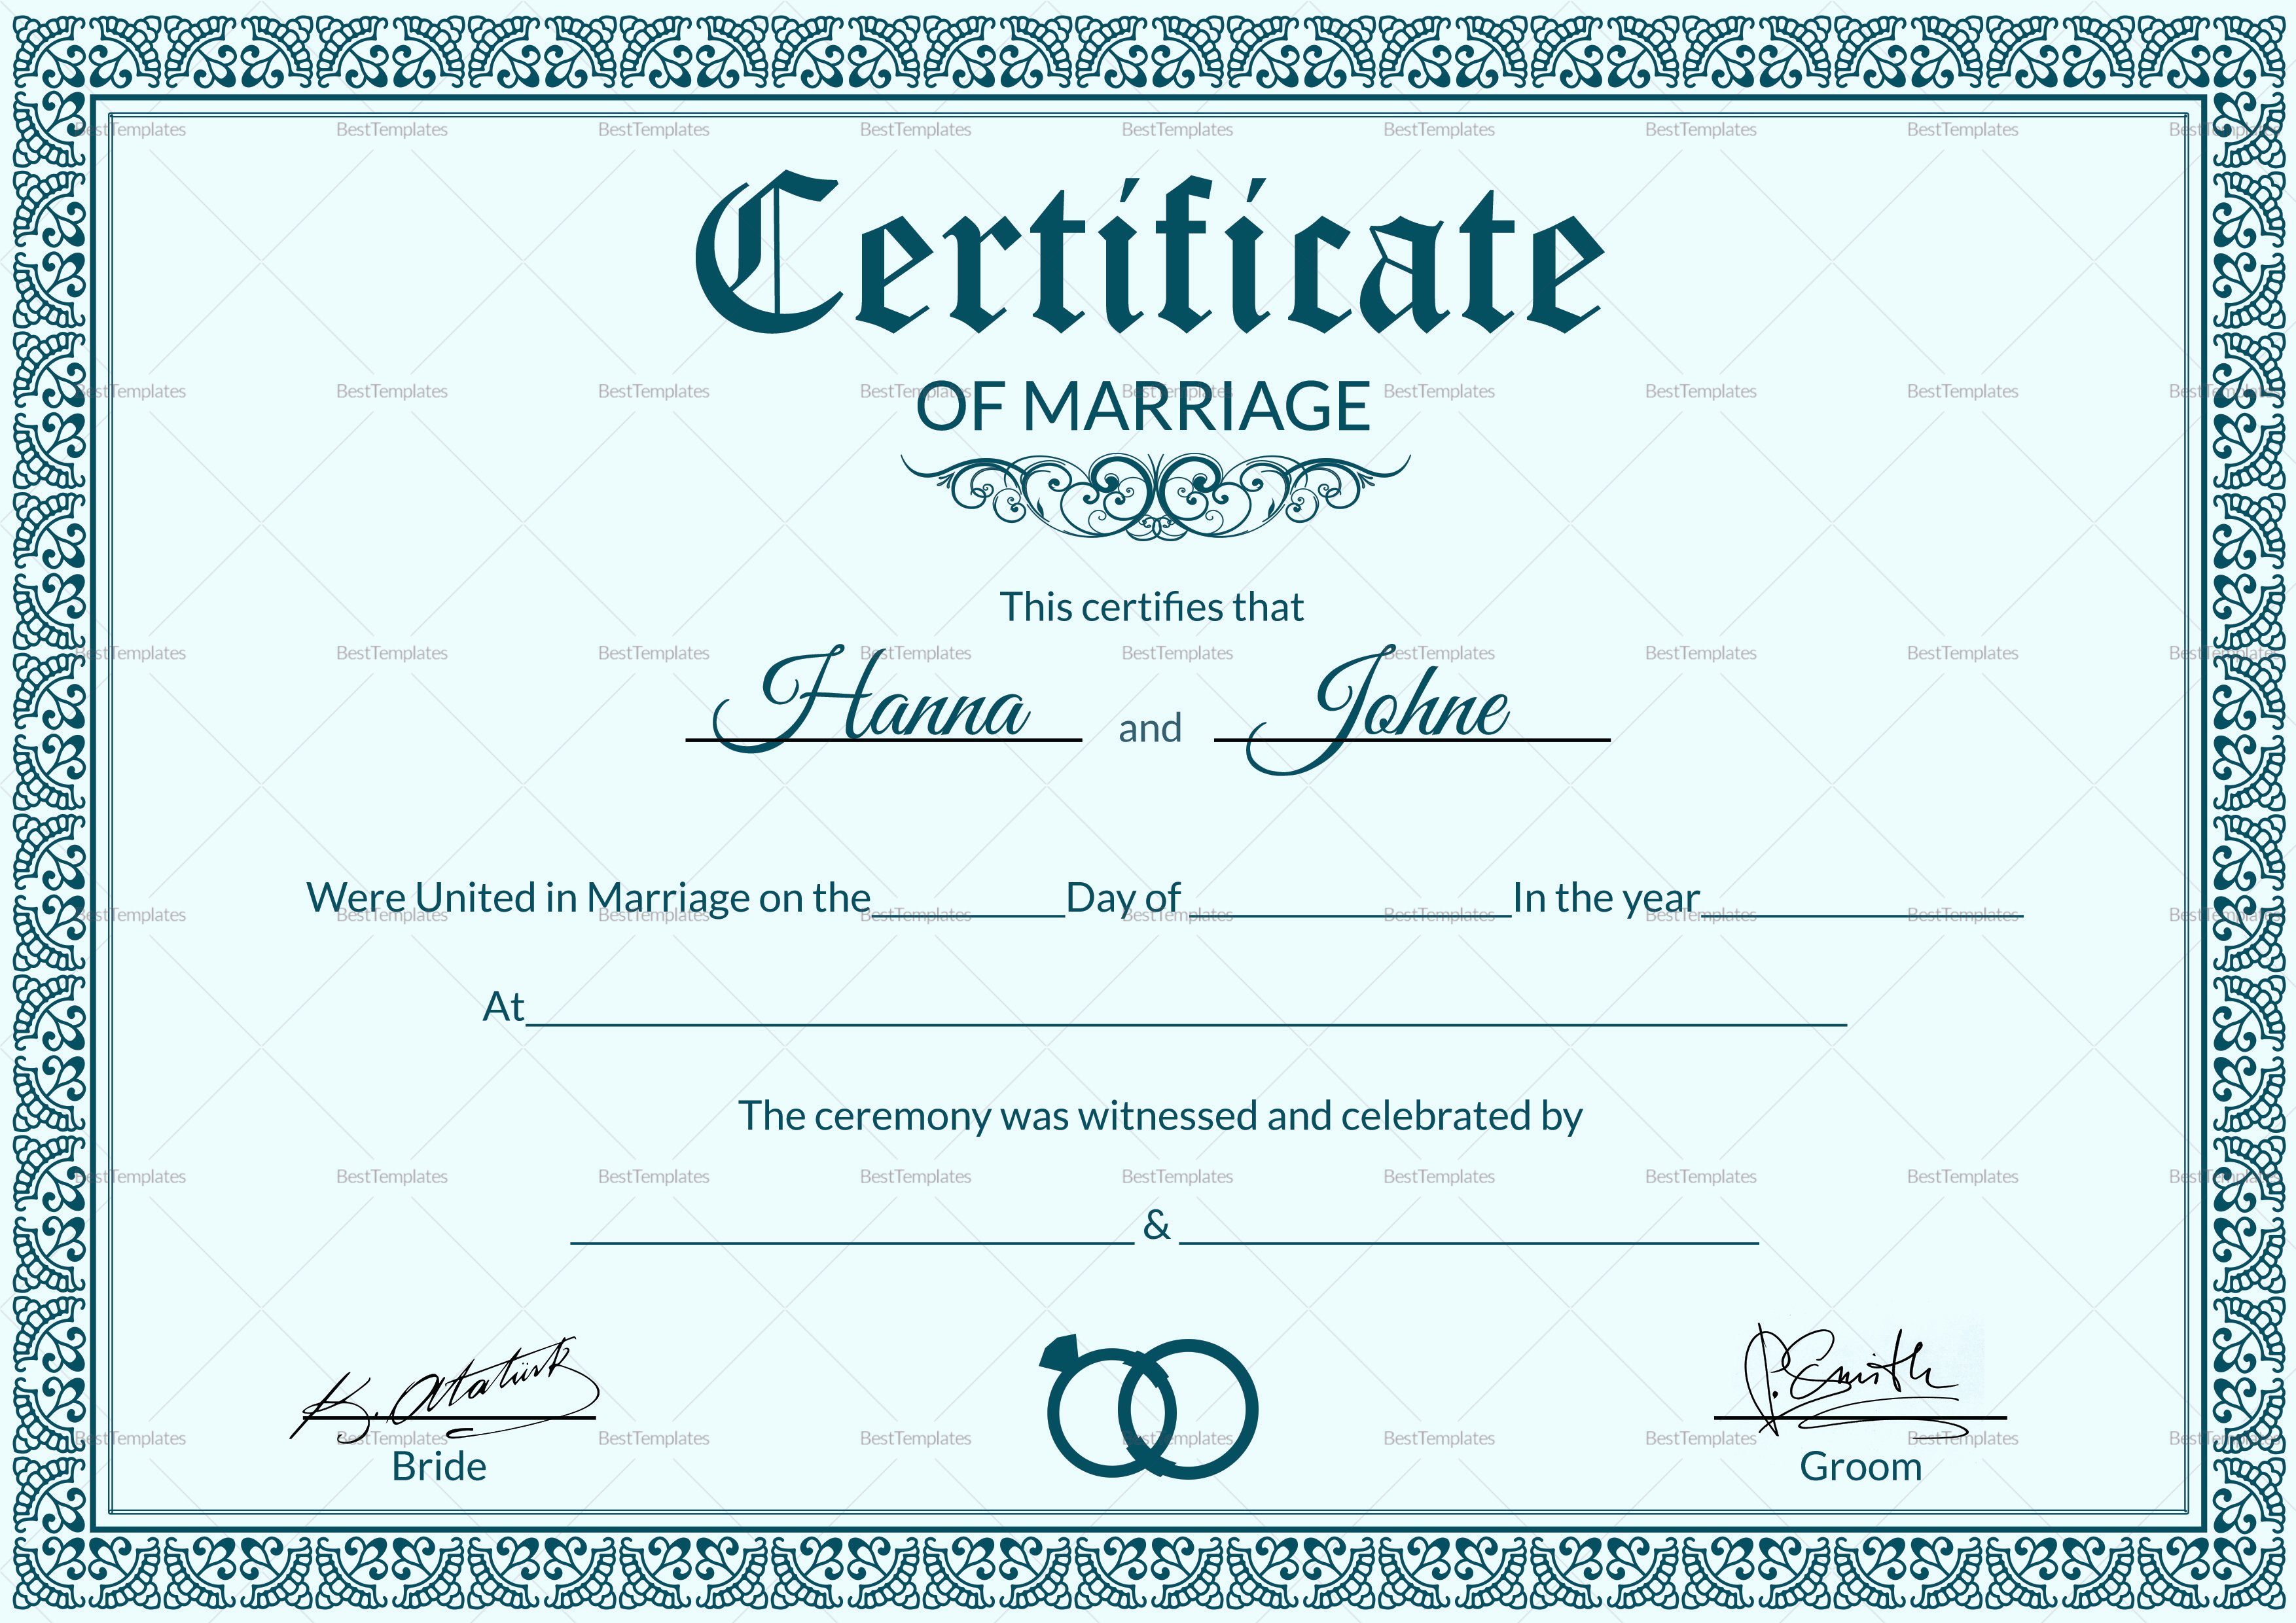 Certificate Of Marriage Template New formal Marriage Certificate Design Template In Psd Word